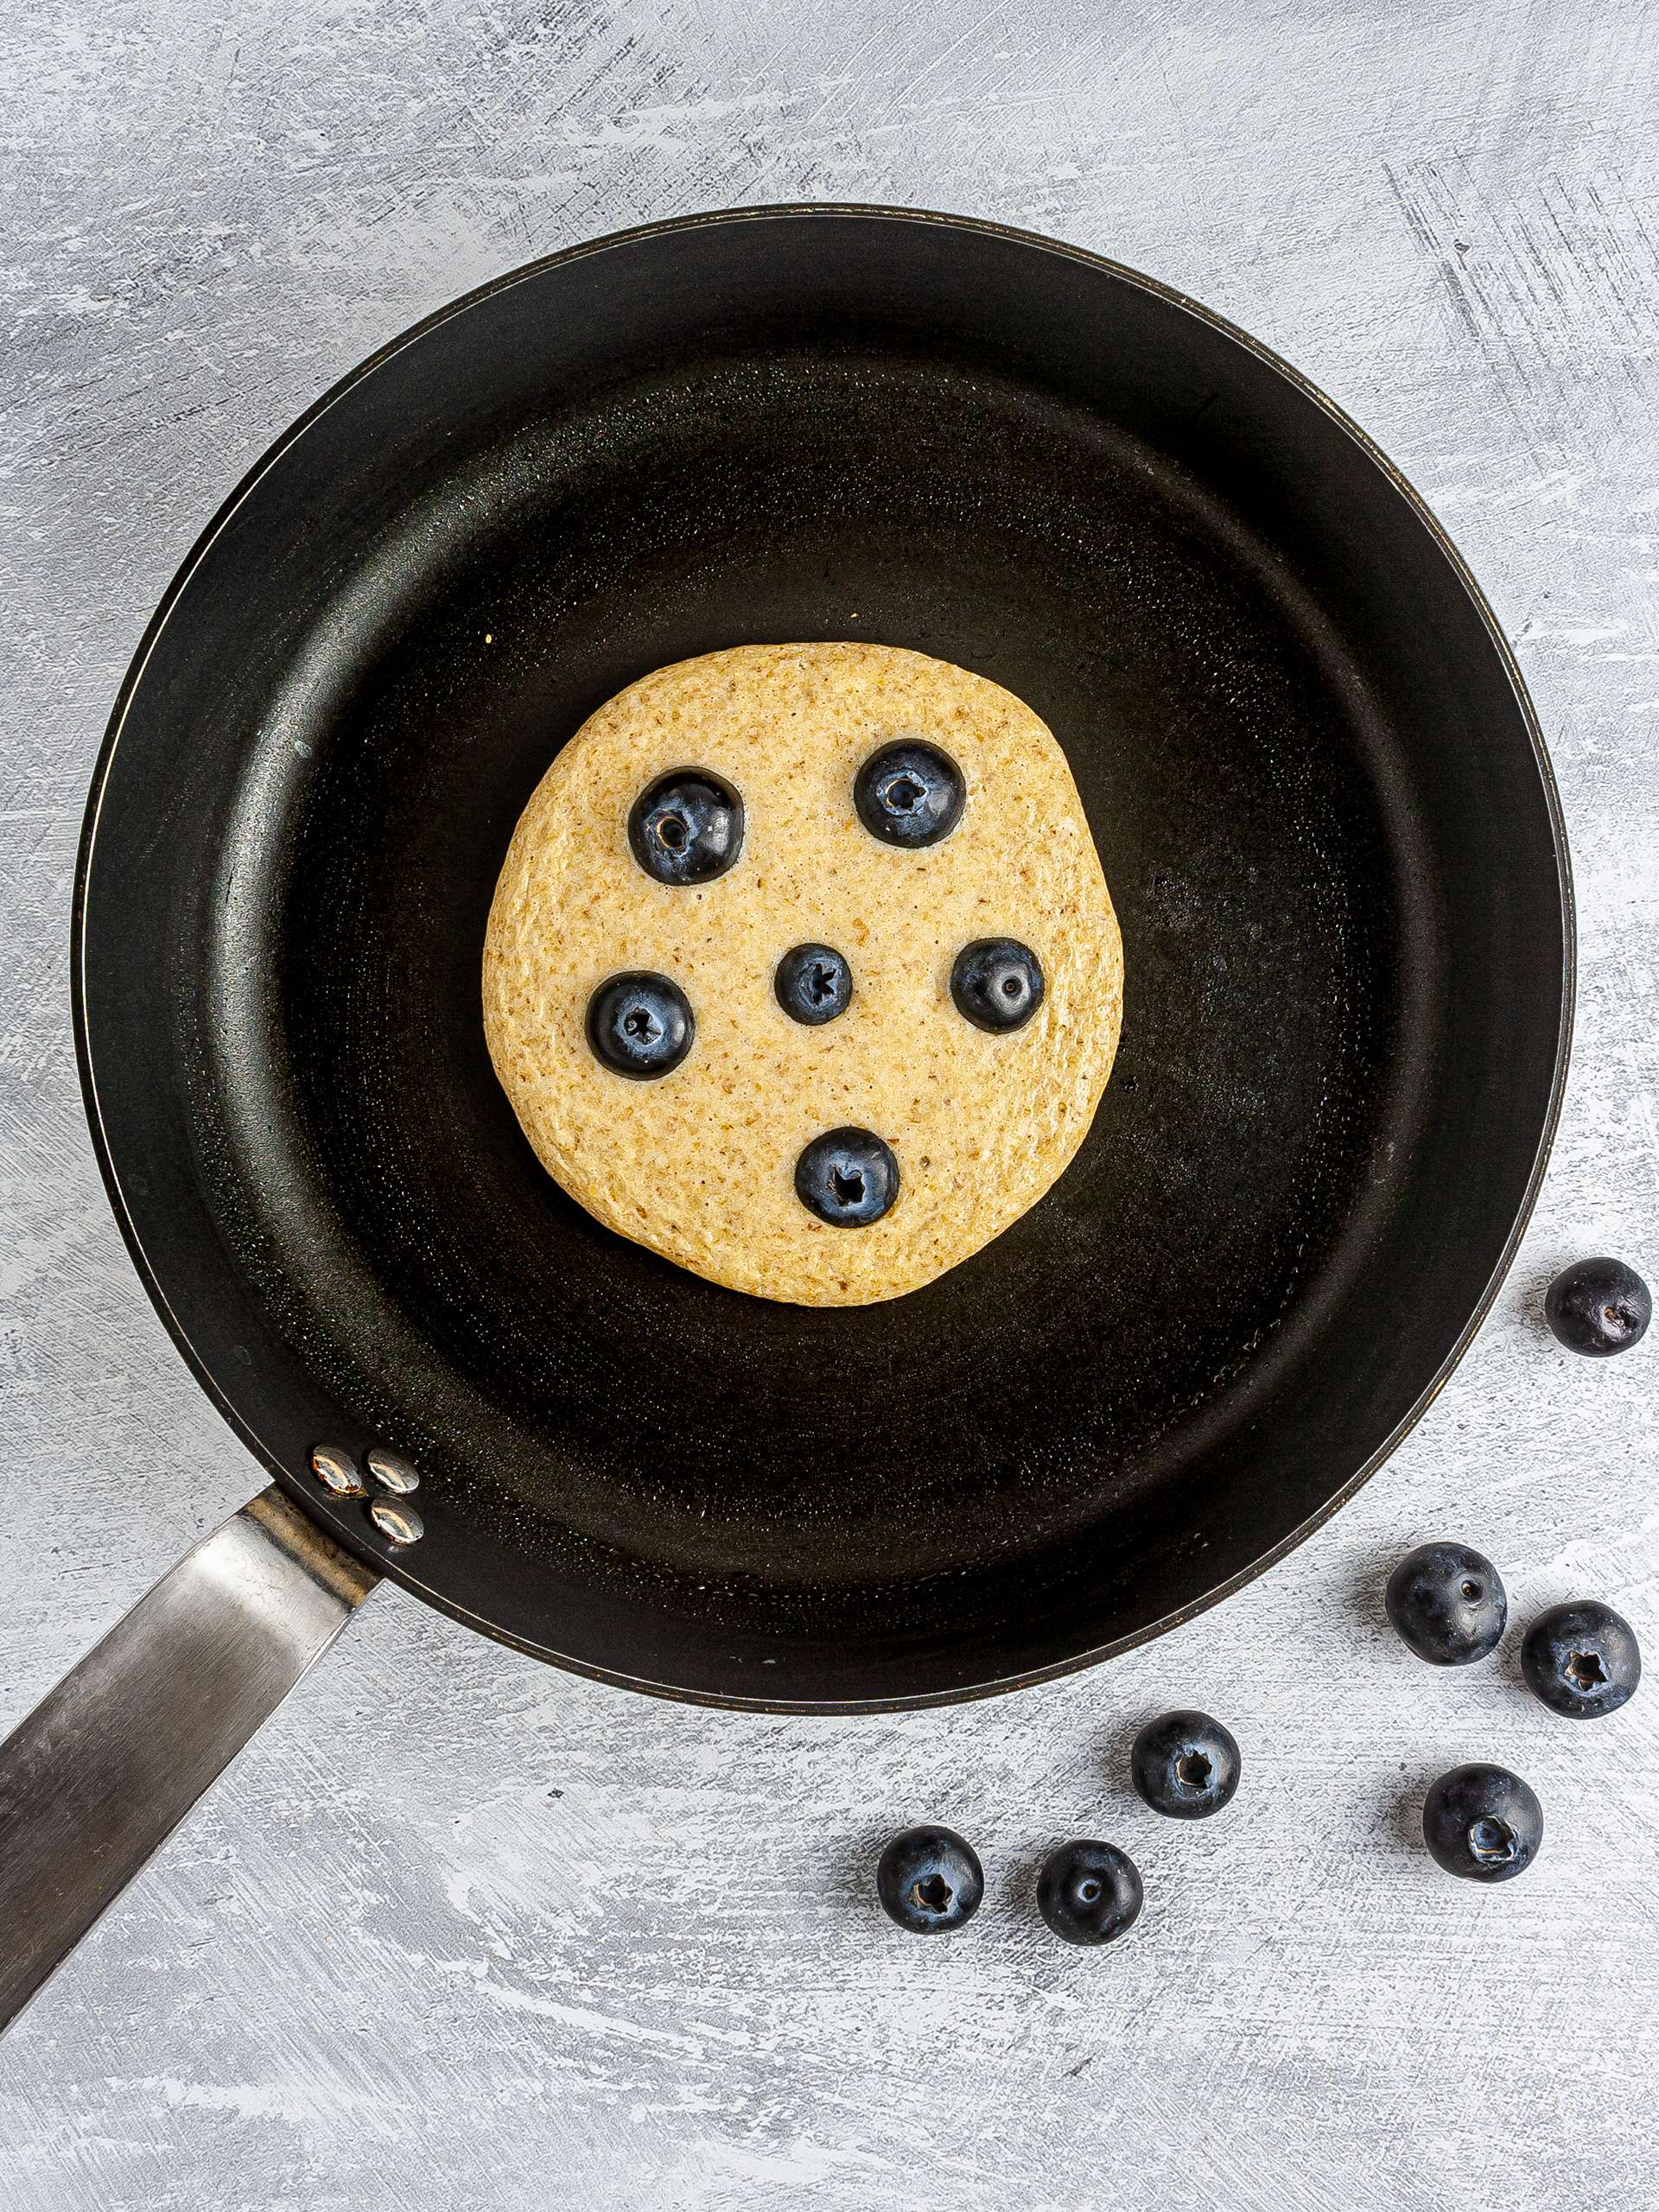 Pancake with blueberries cooking in a pan